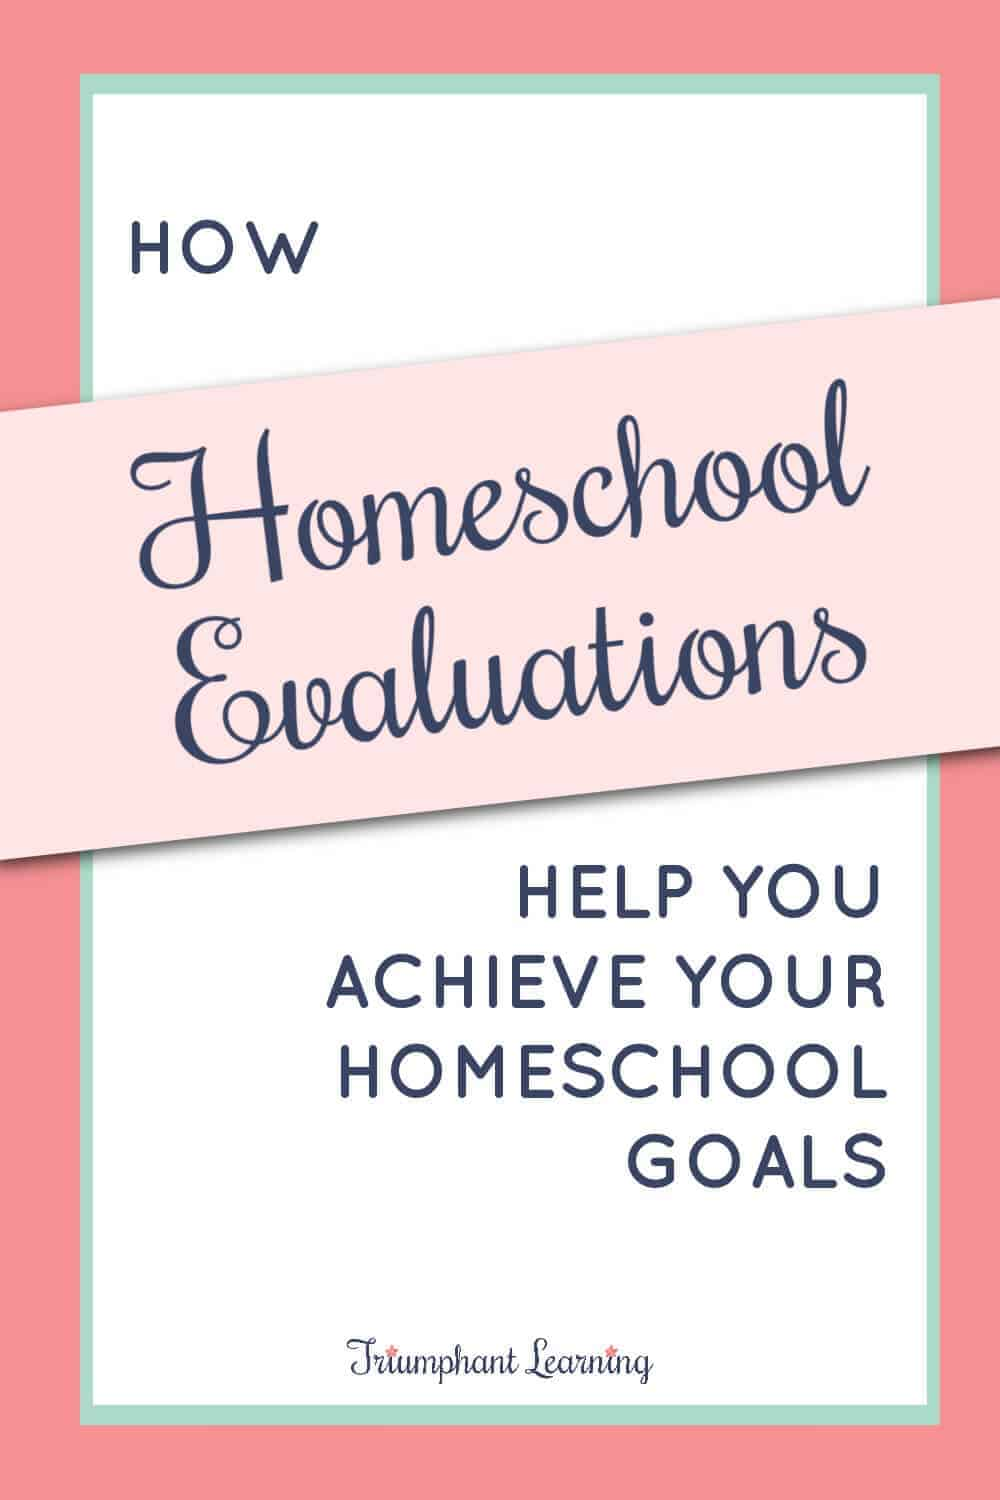 Learn about the benefits of homeschool evaluations and how to make time to assess your homeschool progress. via @TriLearning